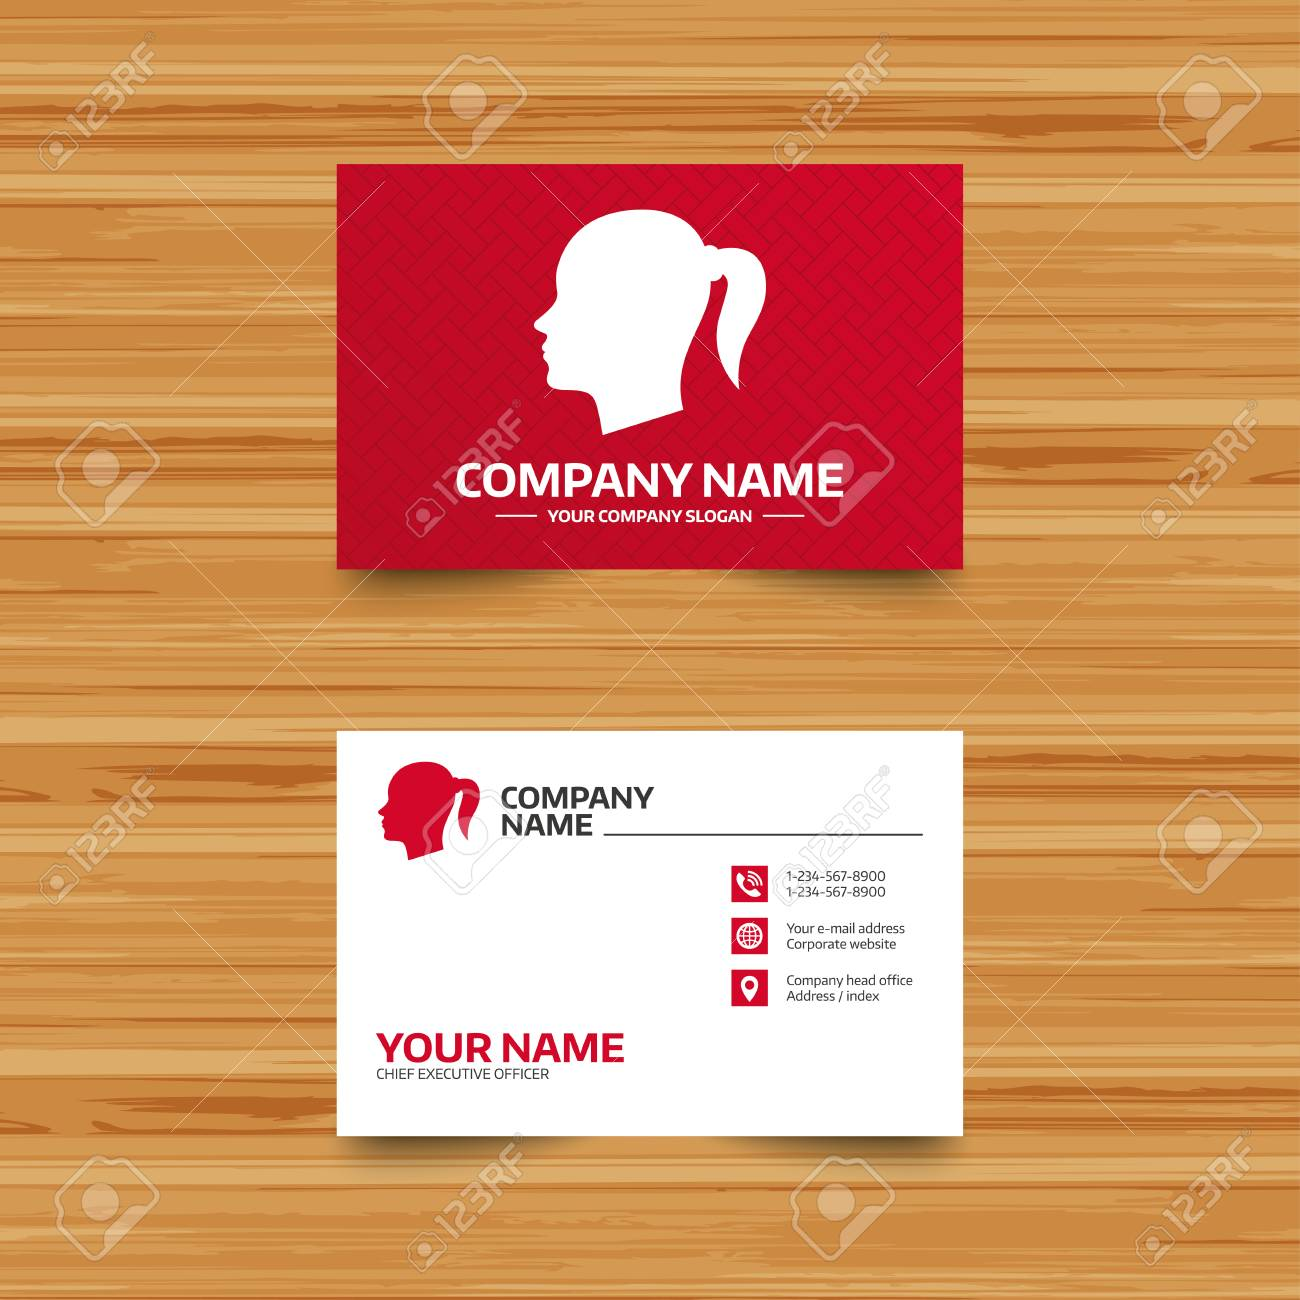 Business card template head sign icon female woman human head business card template head sign icon female woman human head with pigtail symbol reheart Images